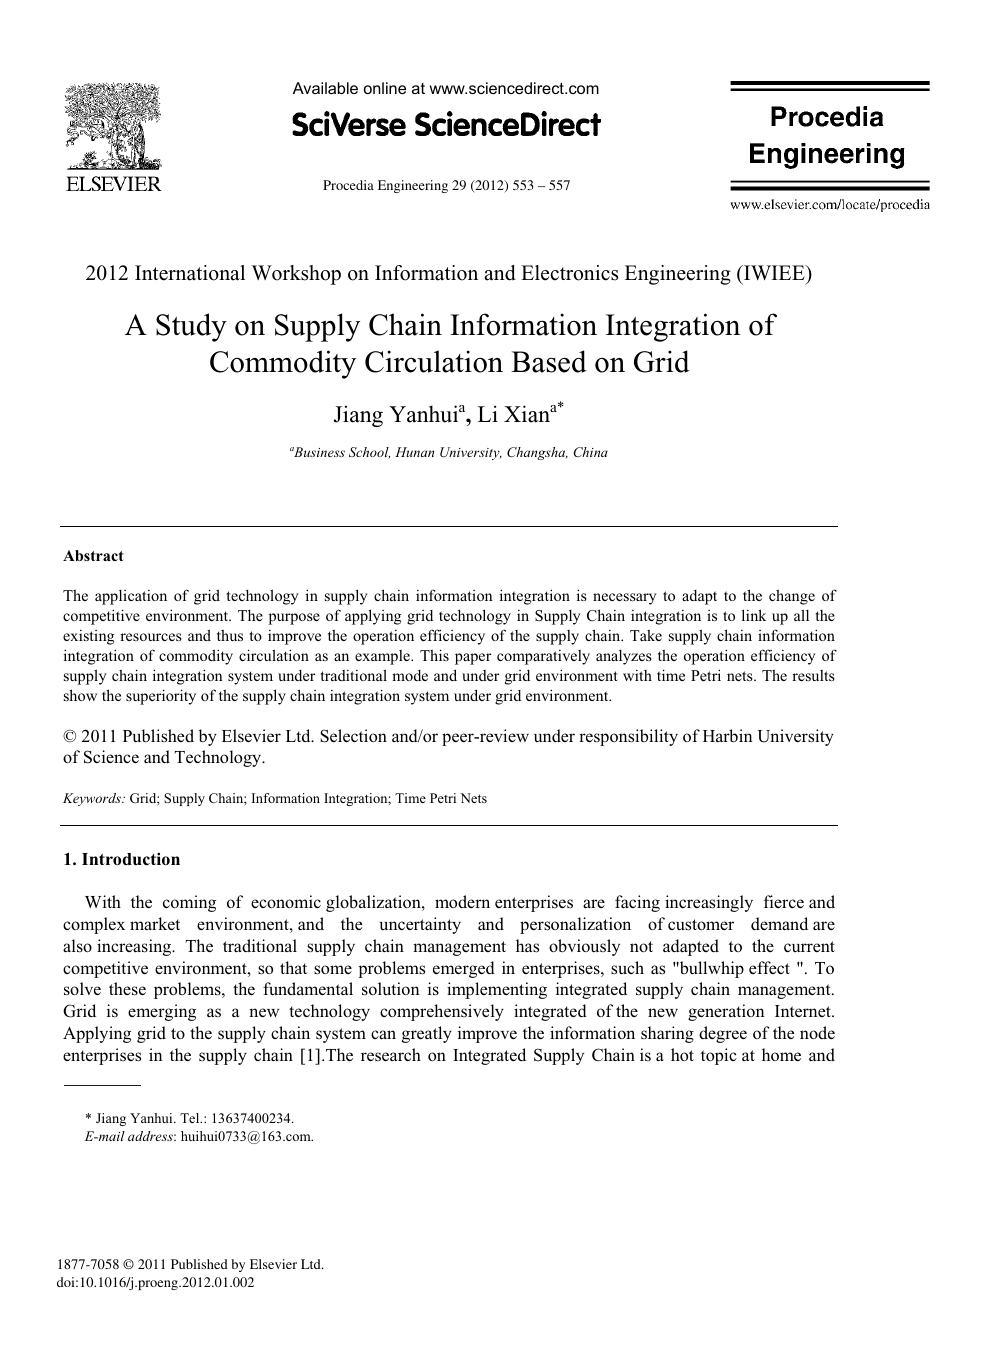 A Study on Supply Chain Information Integration of Commodity